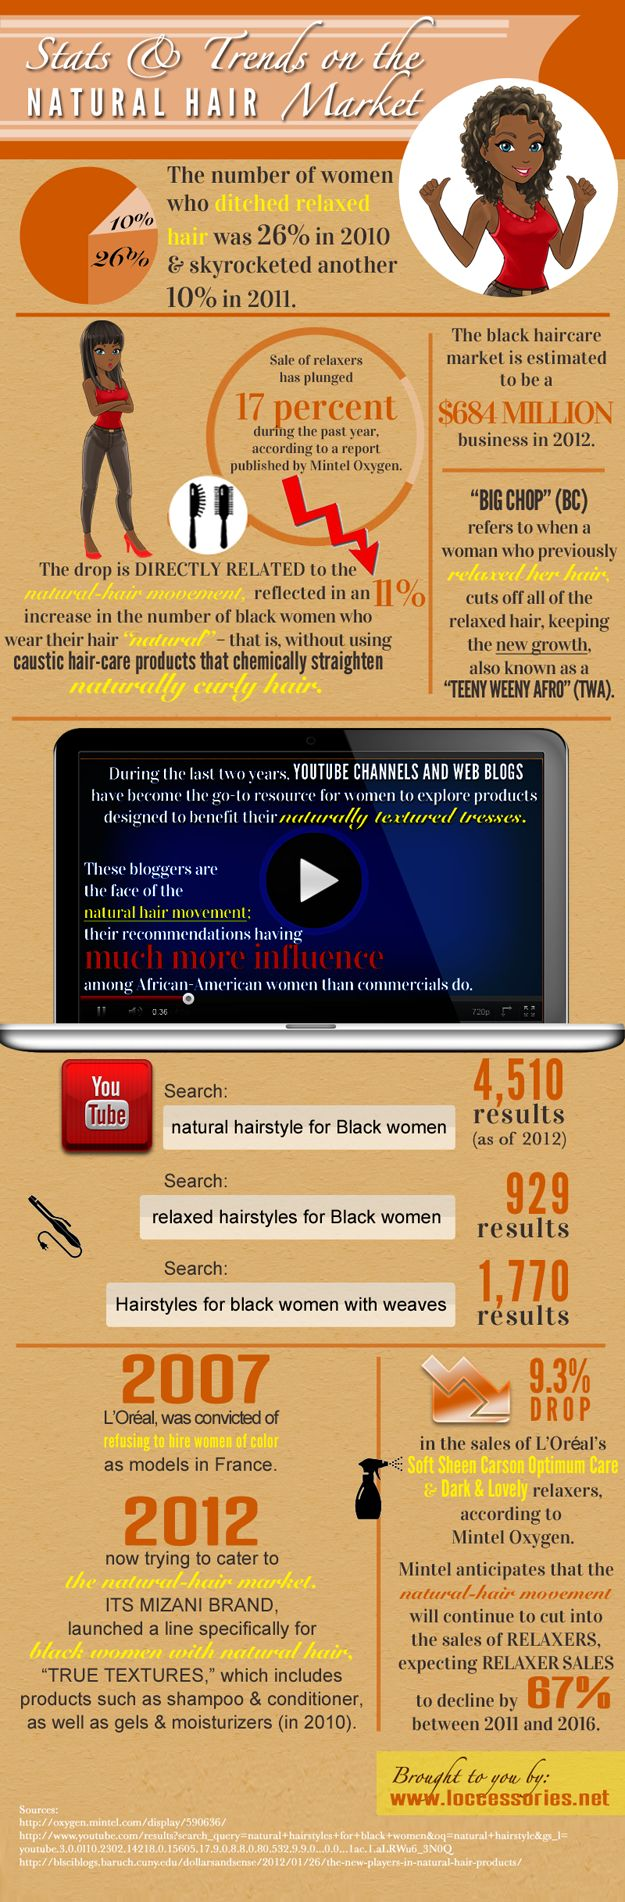 Natural Hair Trends Infographic - The Facts - BlackHairInformation.com - Growing Black Hair Long And Healthy